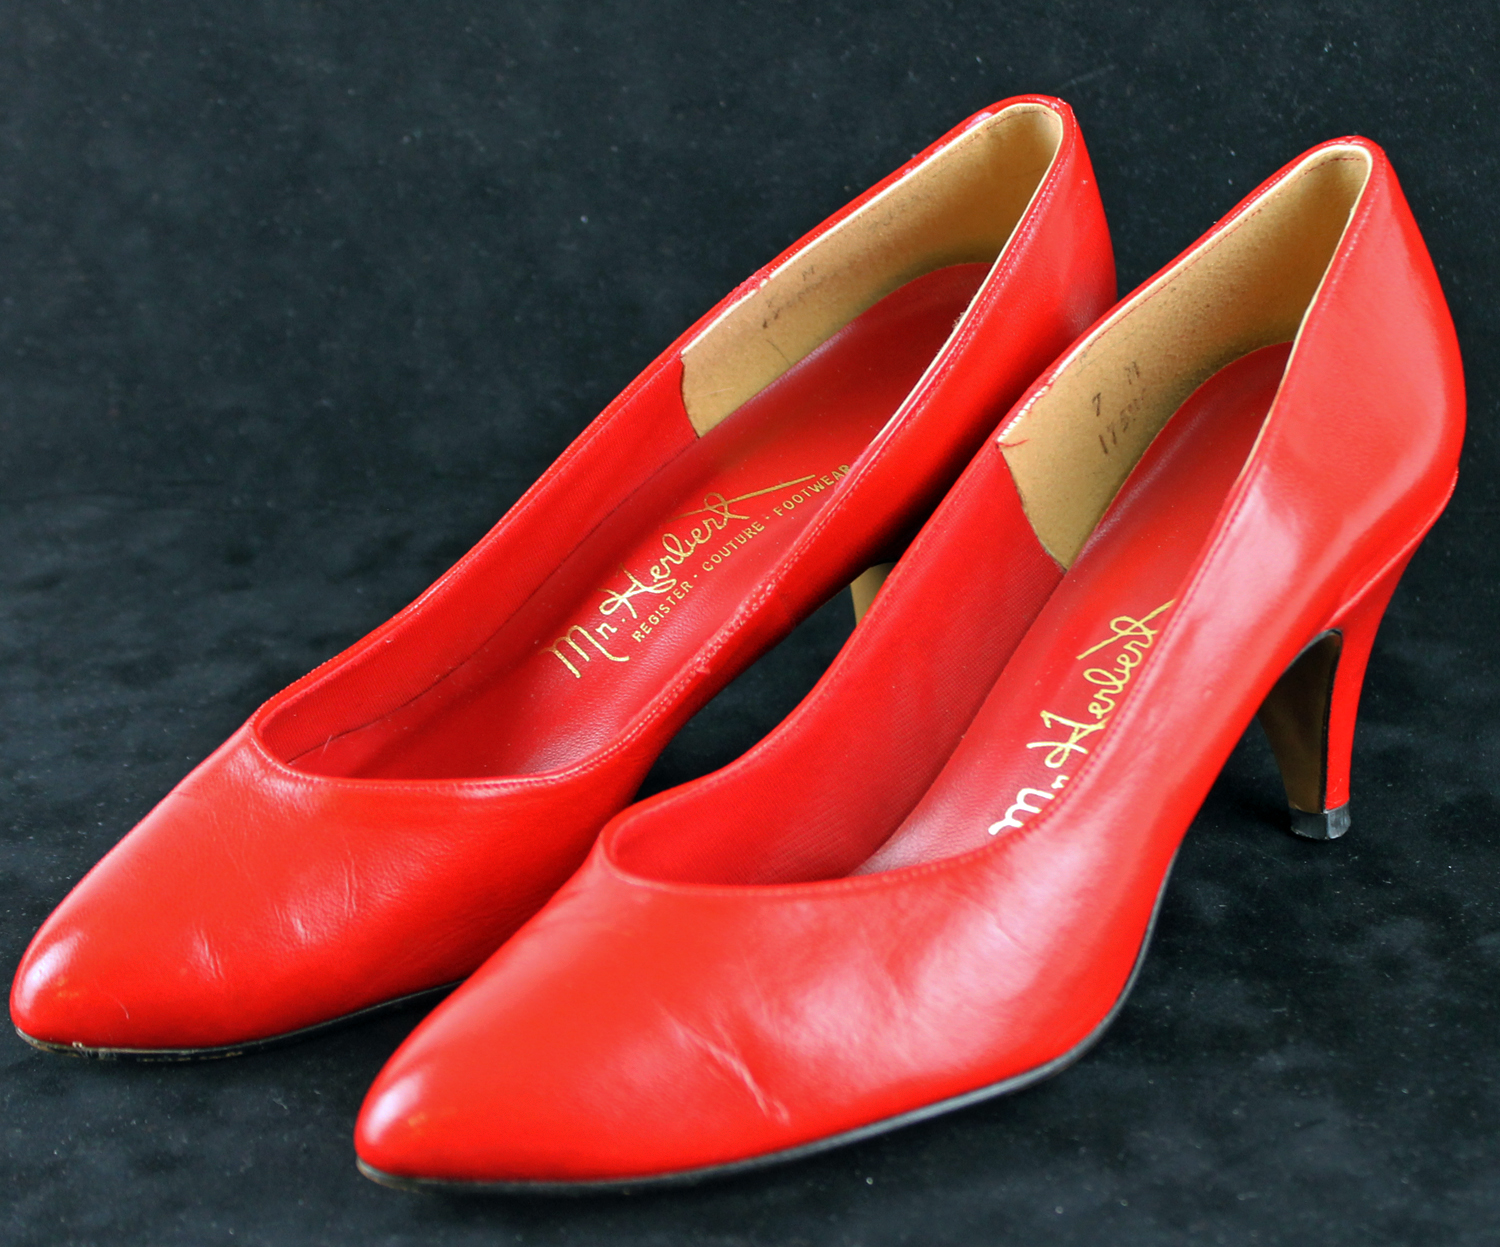 Marilyn Monroe Personally Owned Worn Red High Heel Shoes Ex